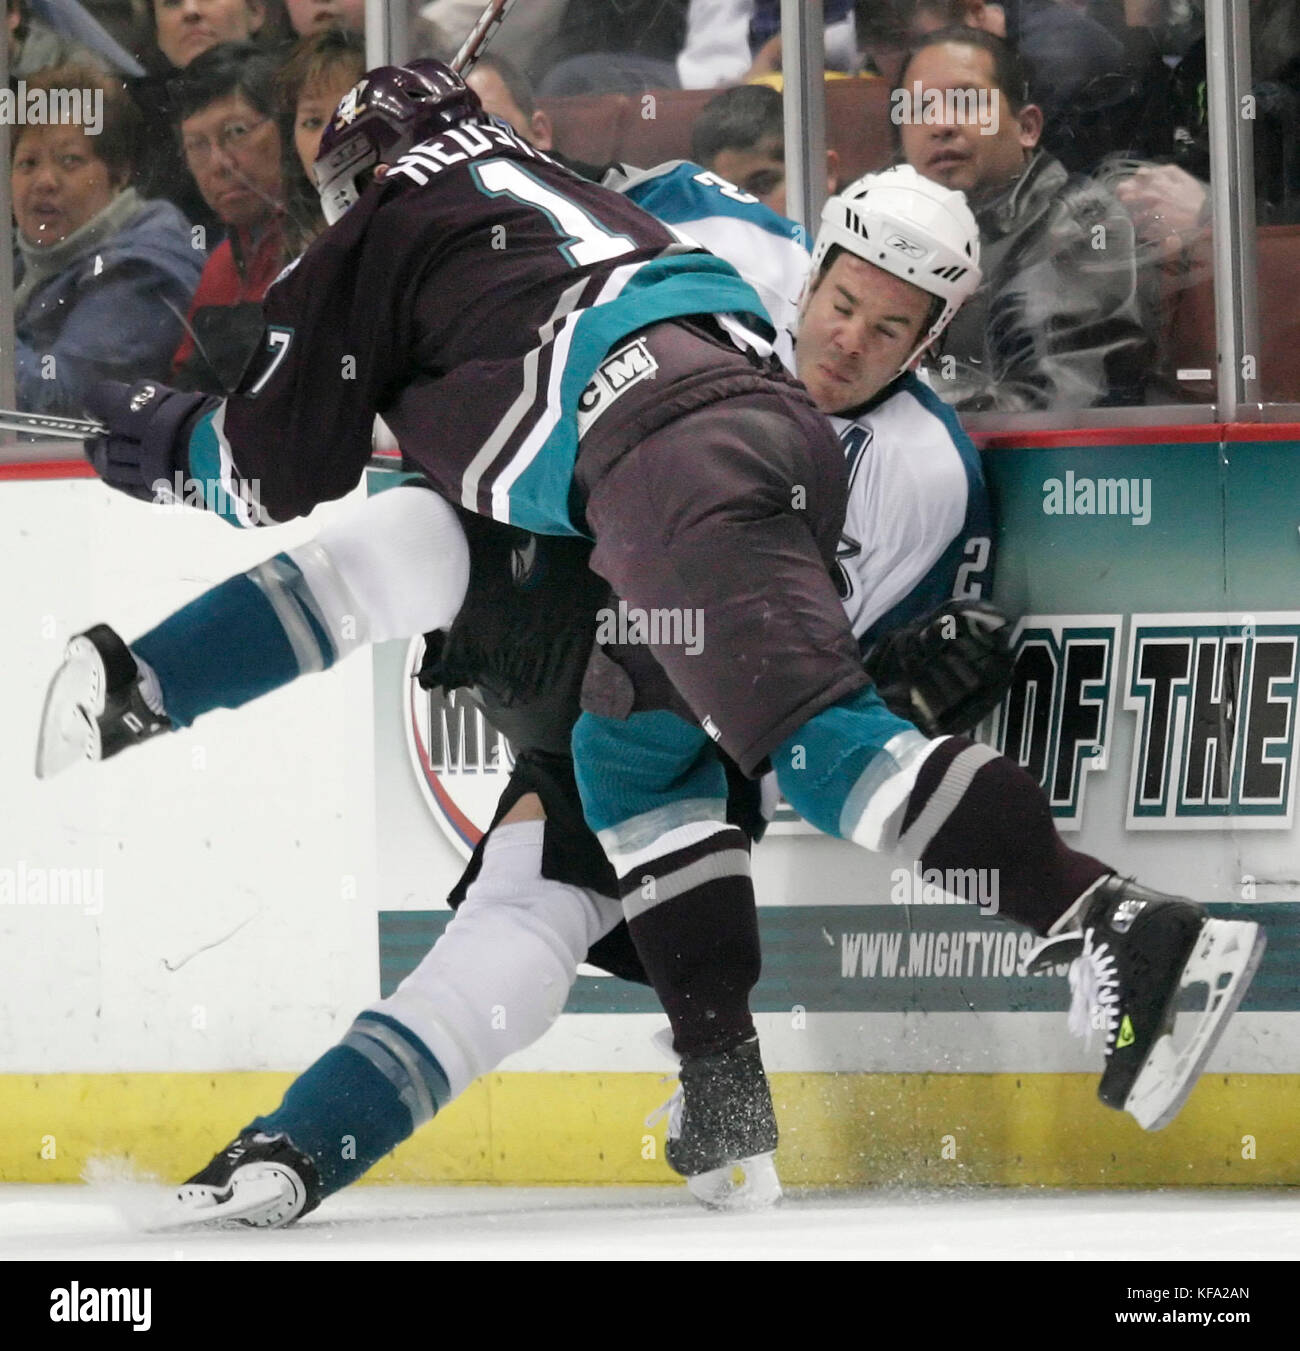 Anaheim Mighty Ducks' Jonathan Hedstrom of Sweden, foreground, checks San Jose Sharks' Scott Hannan into - Stock Image